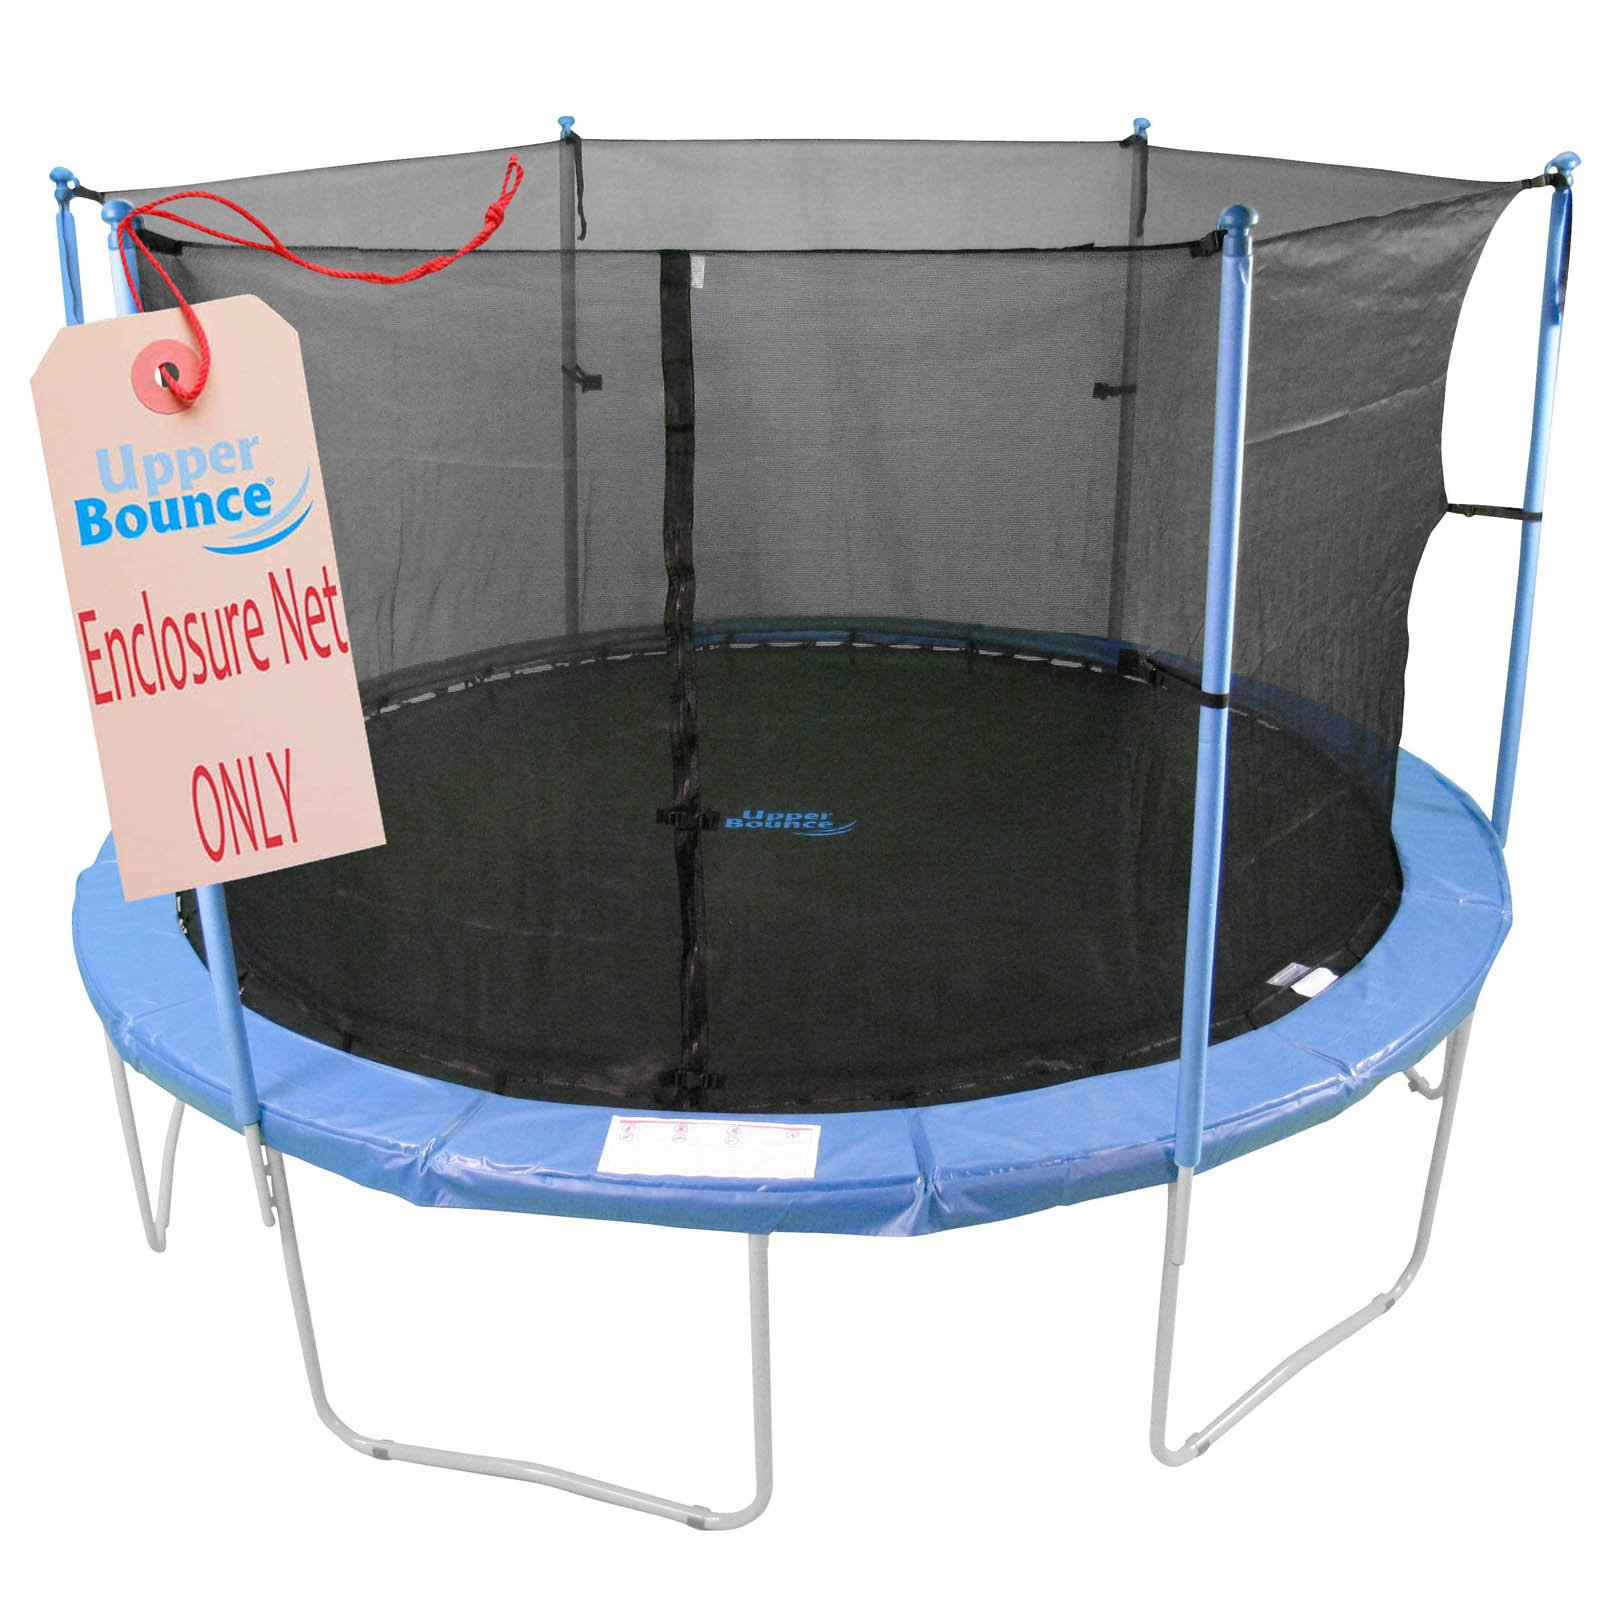 Upper Bounce Trampoline Replacement Enclosure Net, Fits for 10 FT. Round Frames, with Adjustable Straps, Using 8 Poles or 4 Arches - Net Only